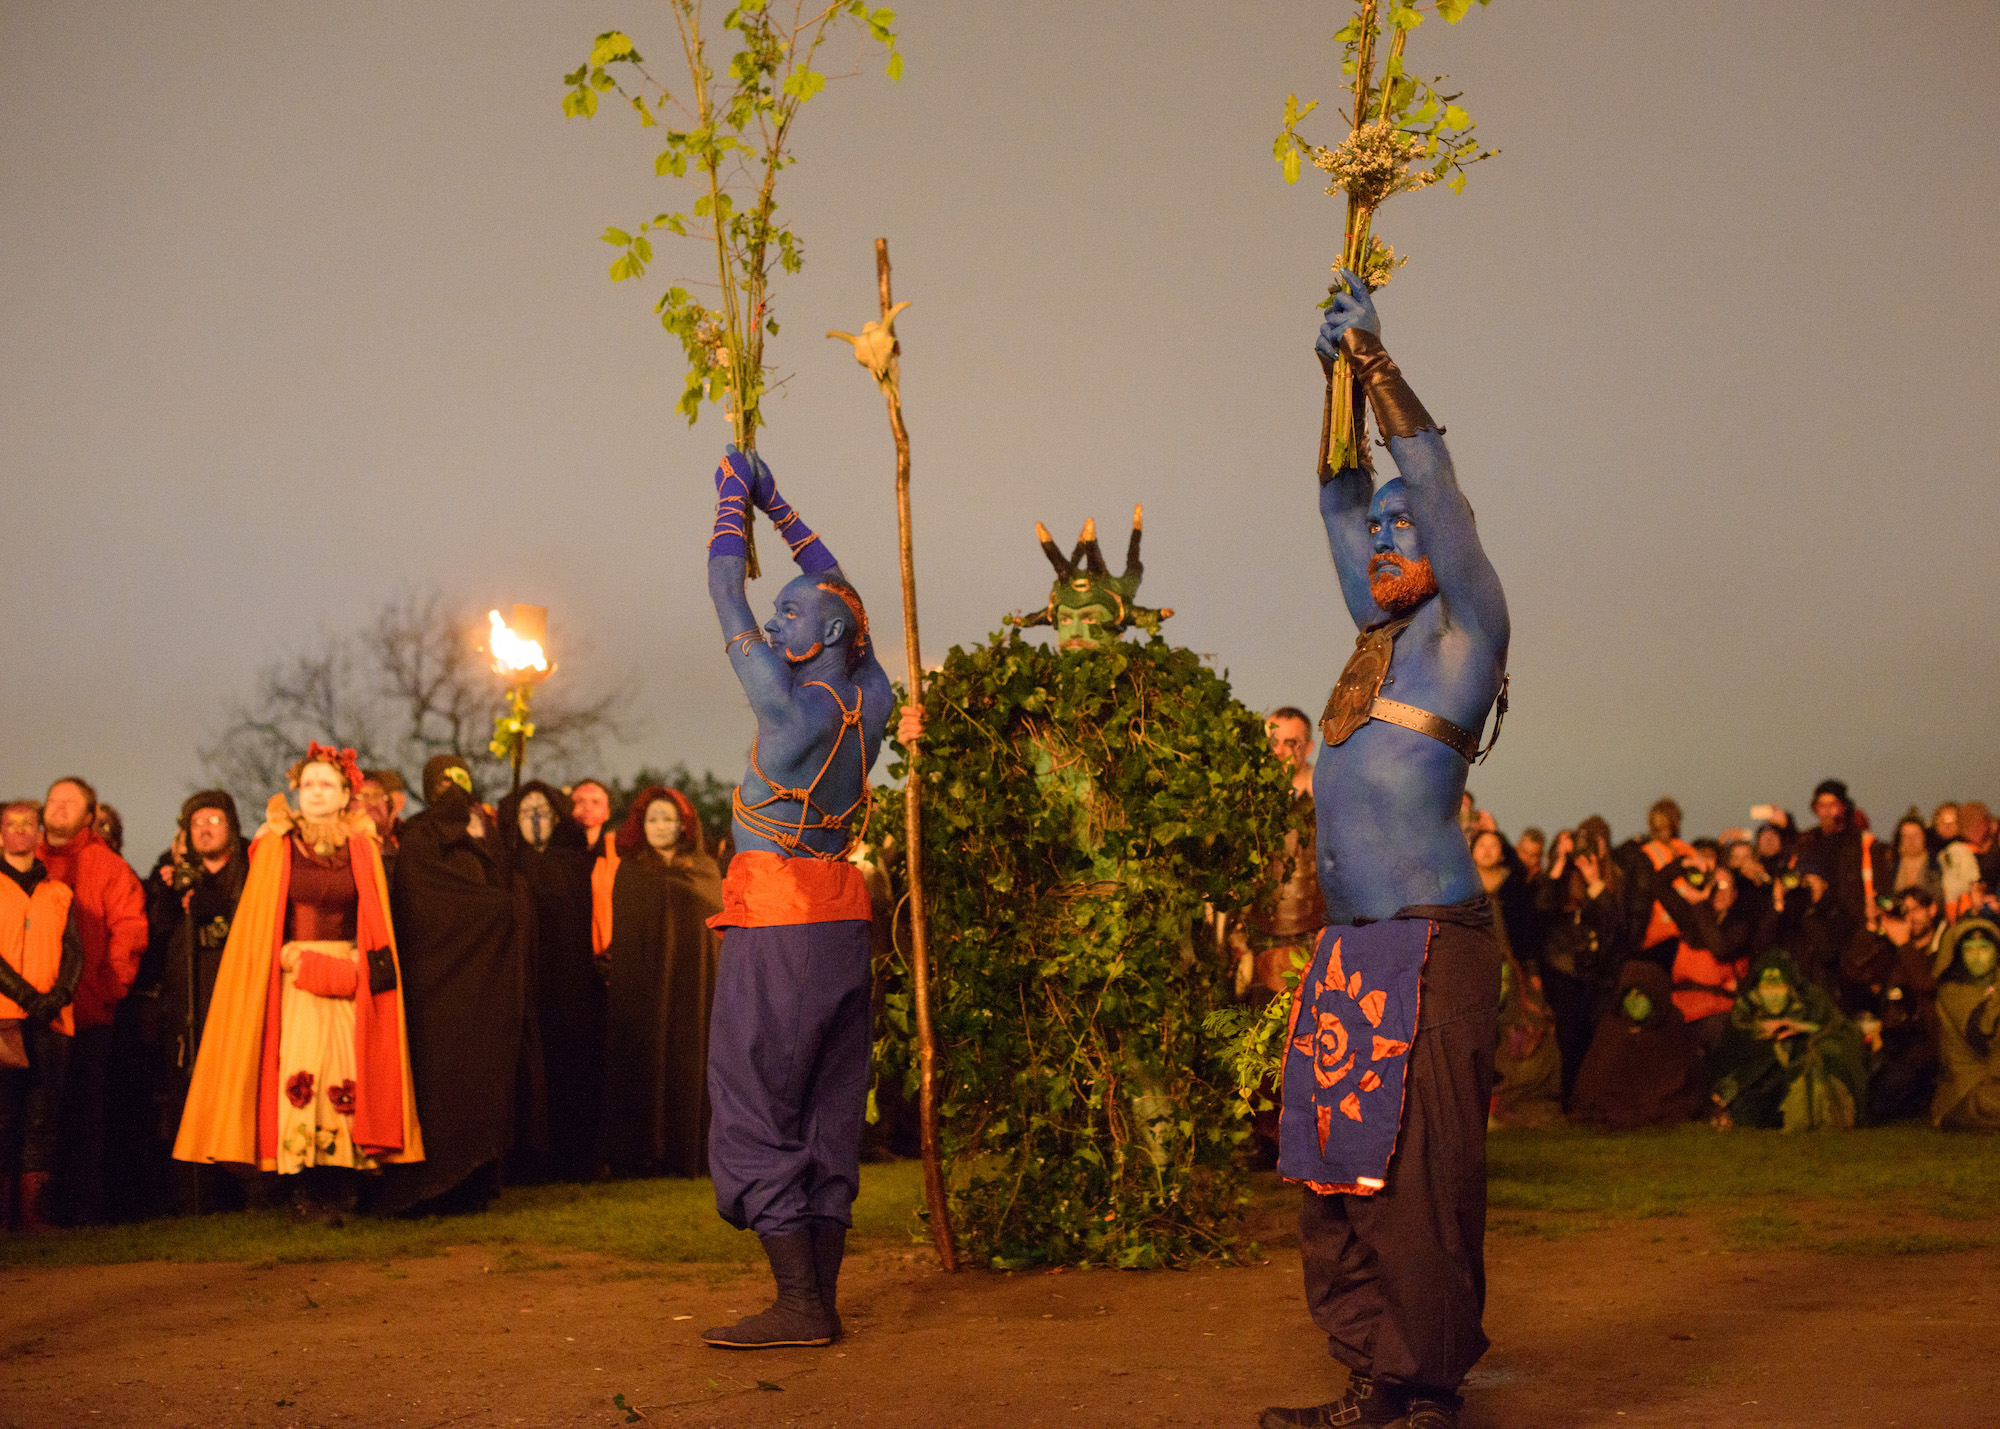 Our new Green Man takes the mantle for Beltane 2020